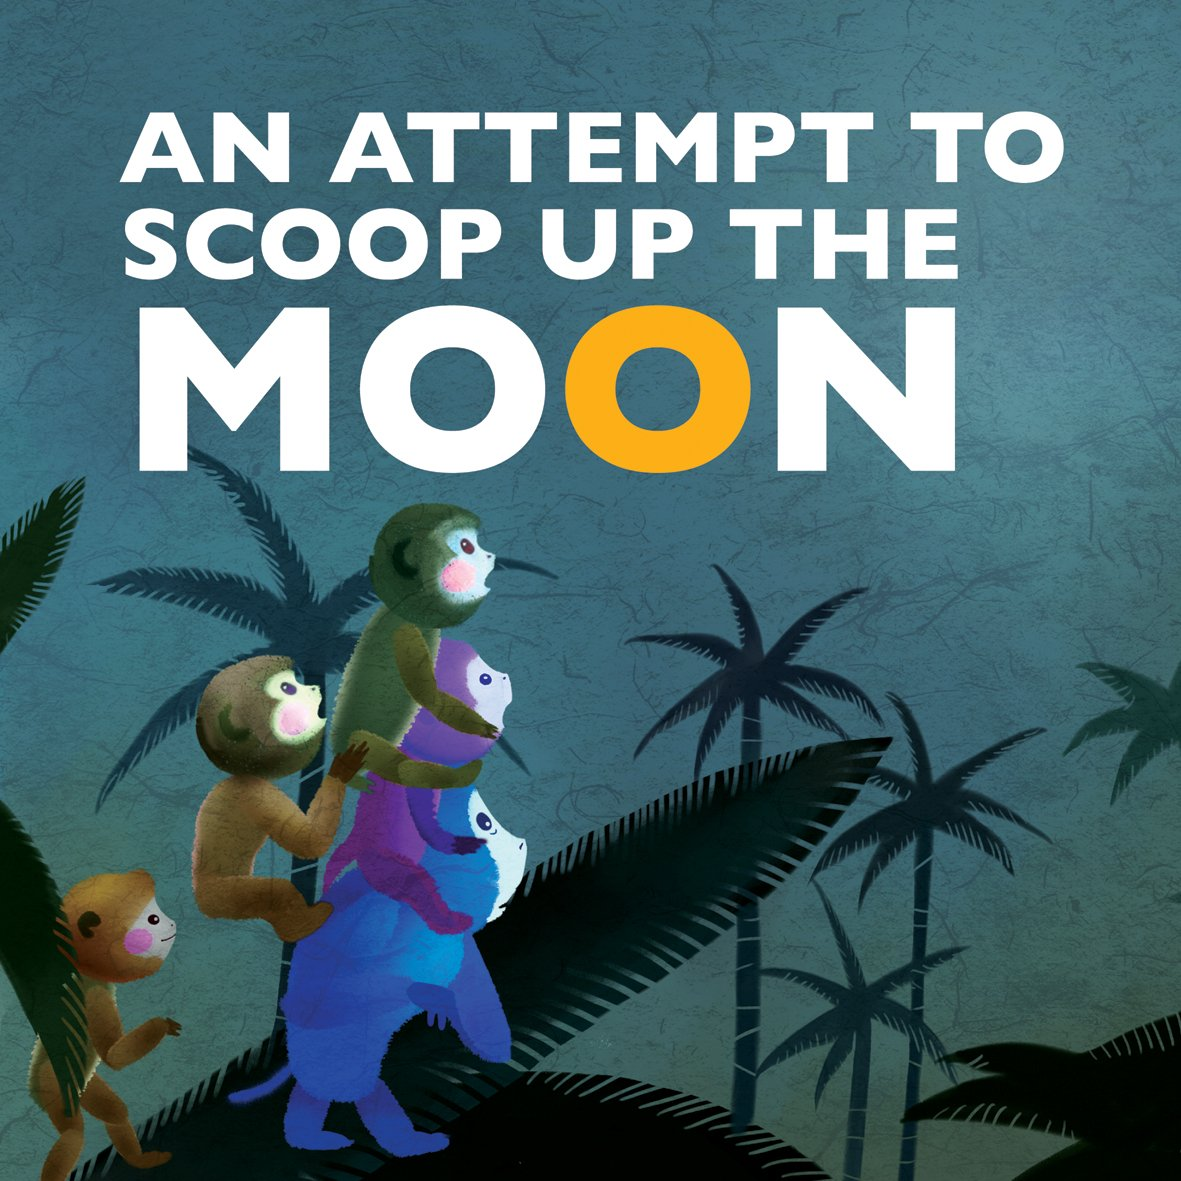 An Attempt to Scoop Up the Moon (Favorite Children's Cartoons From China)